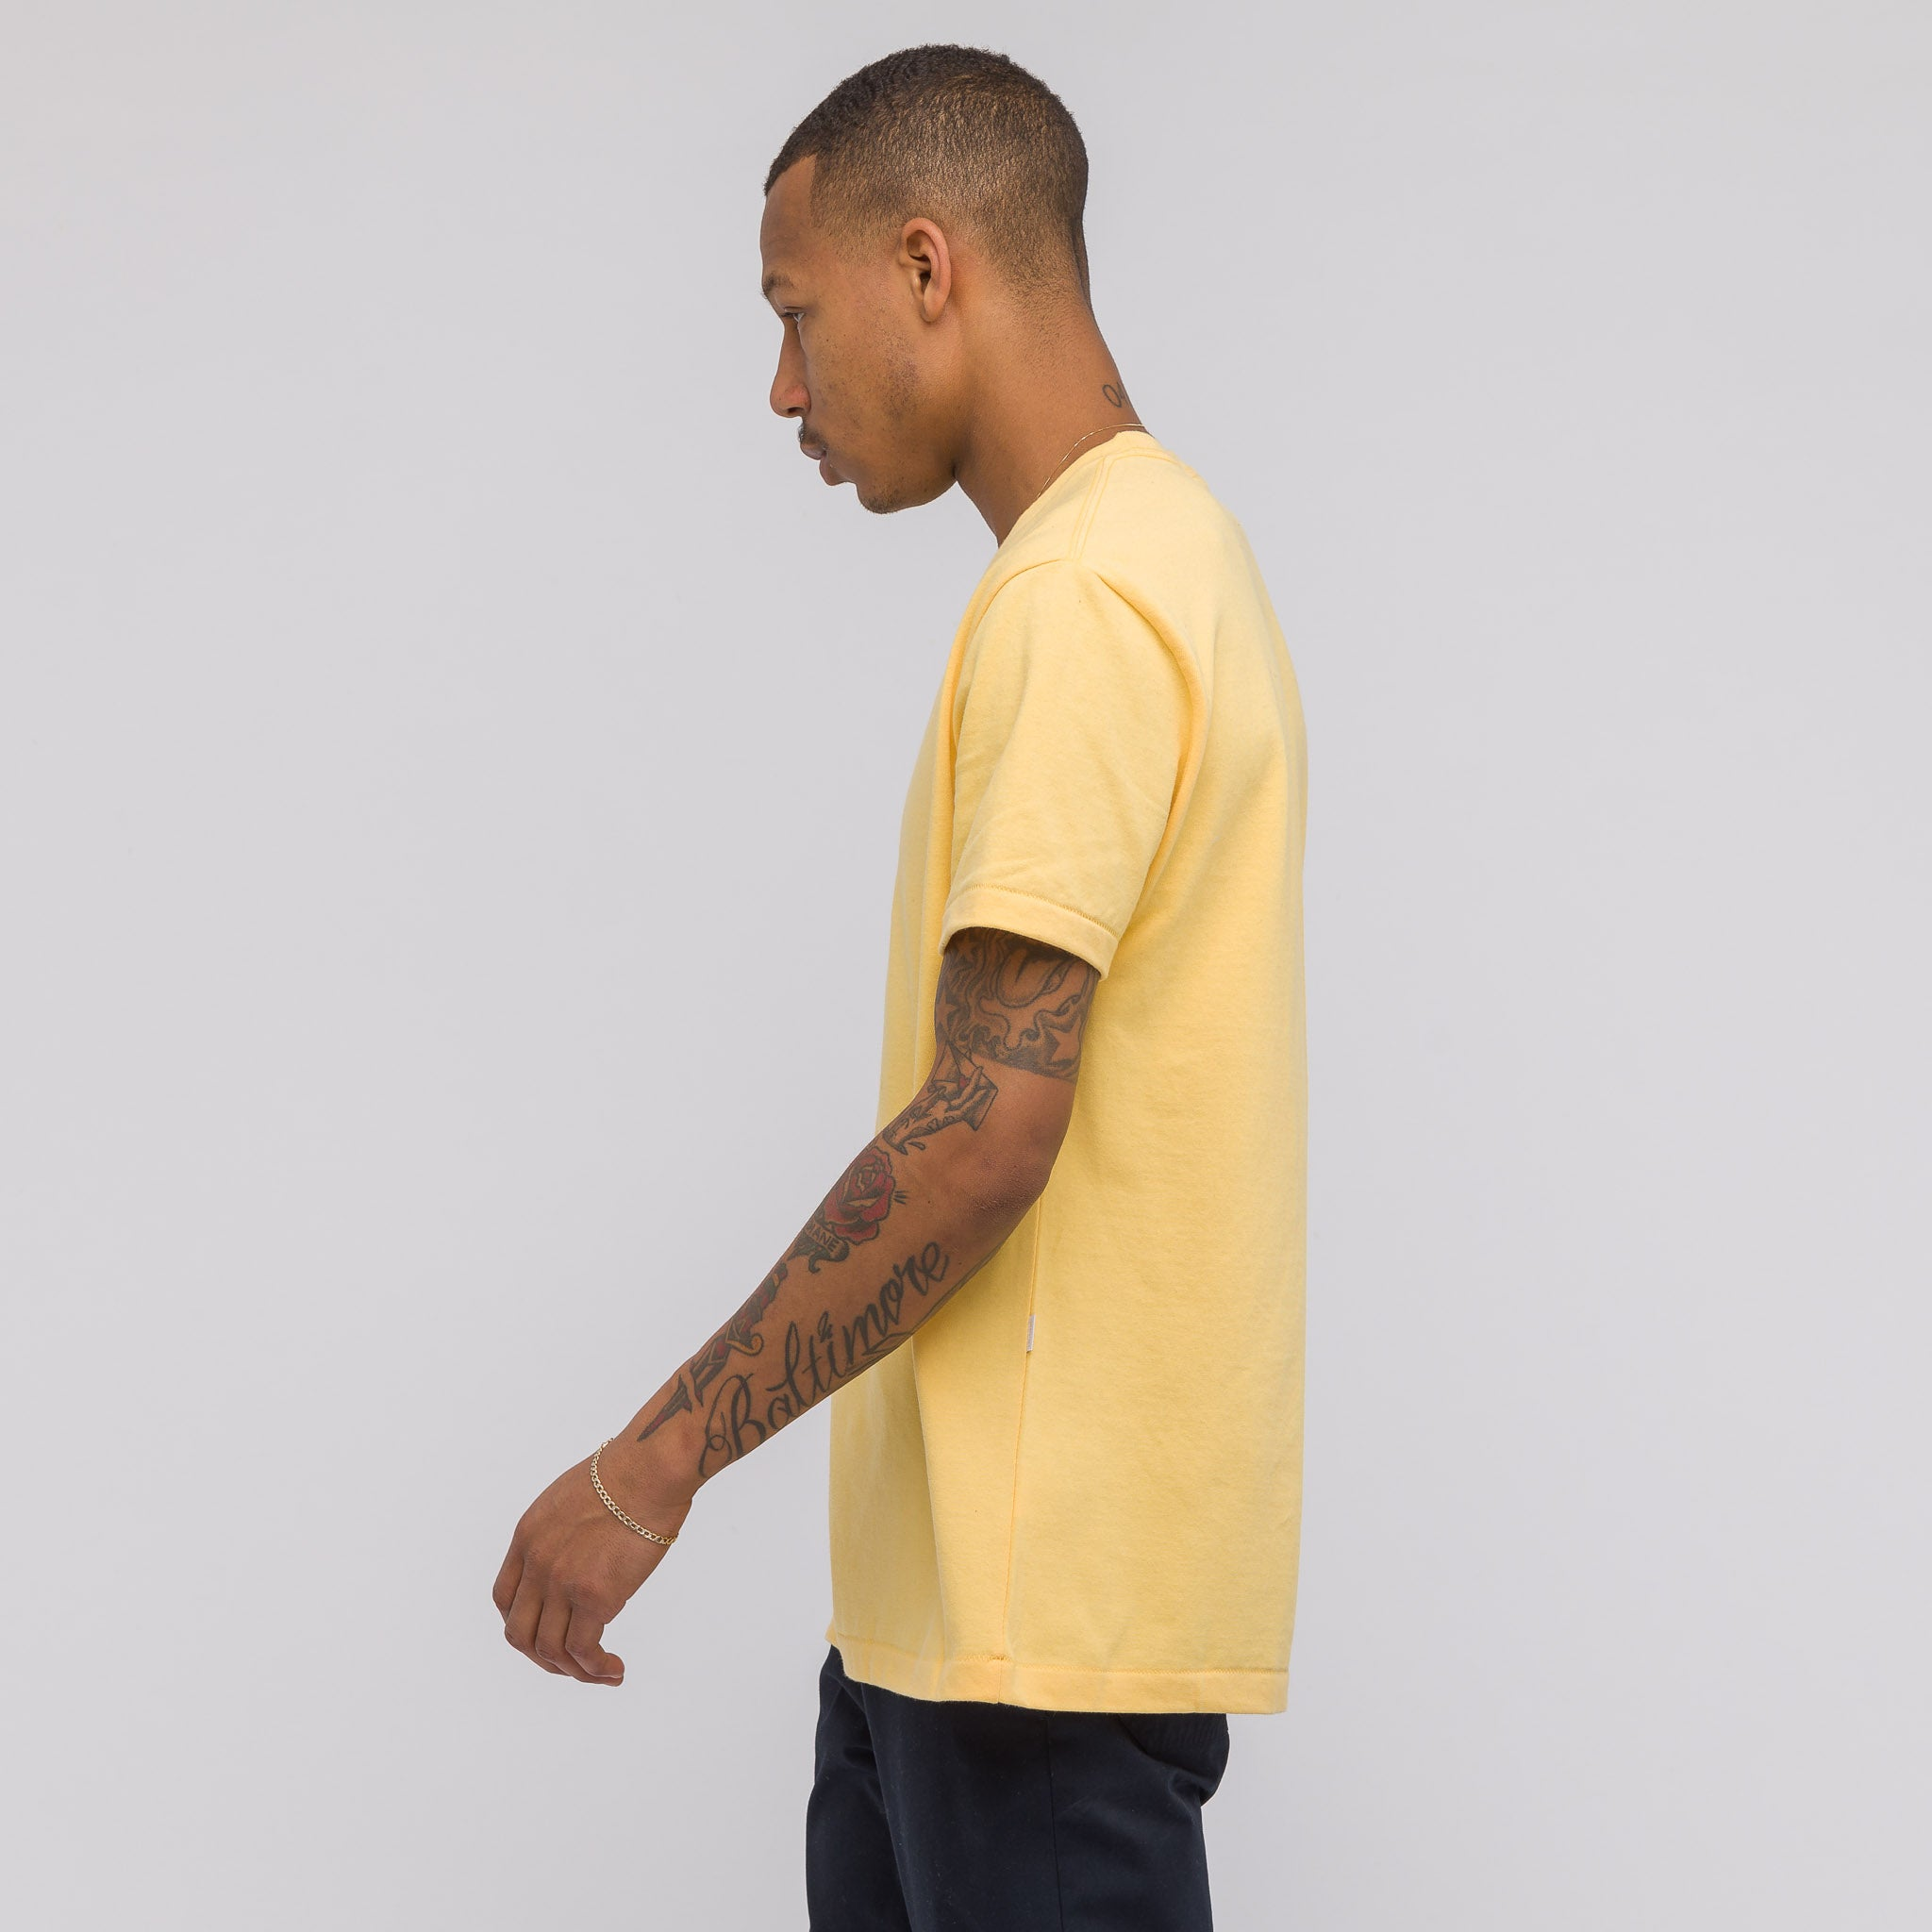 ALD Graphic T-Shirt in Yellow